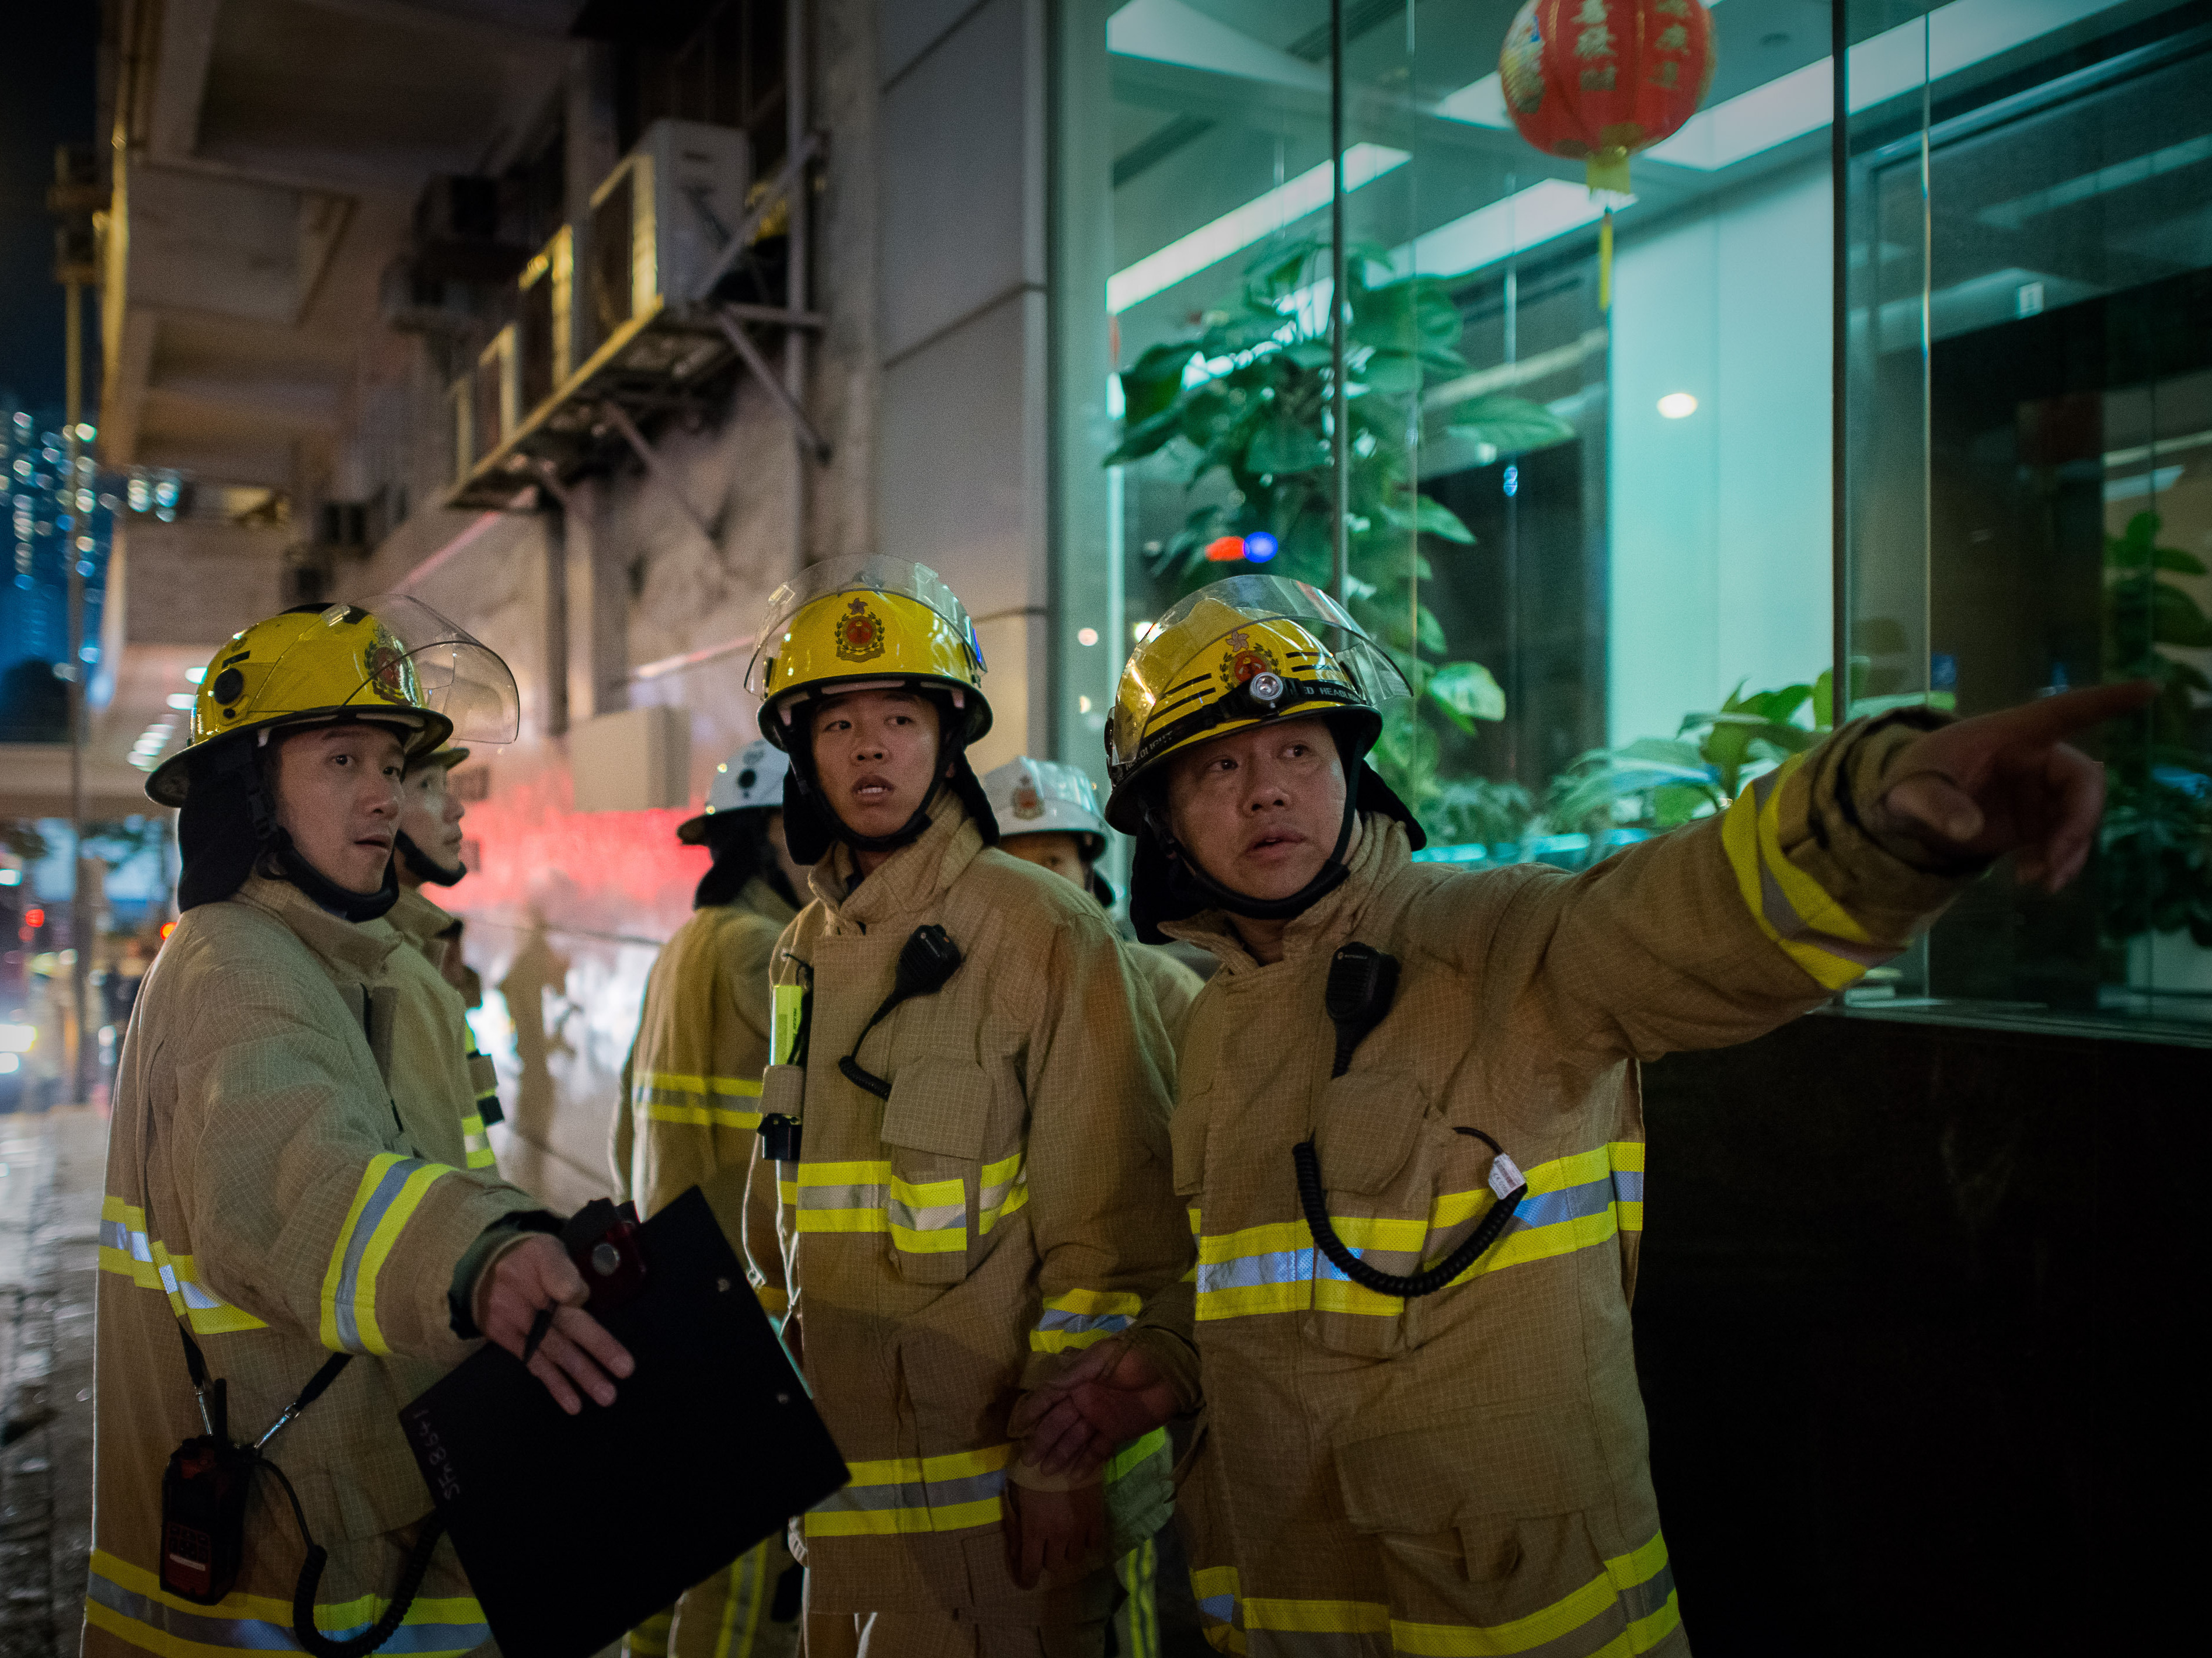 American WWII Bomb Unearthed, Defused In Central Hong Kong